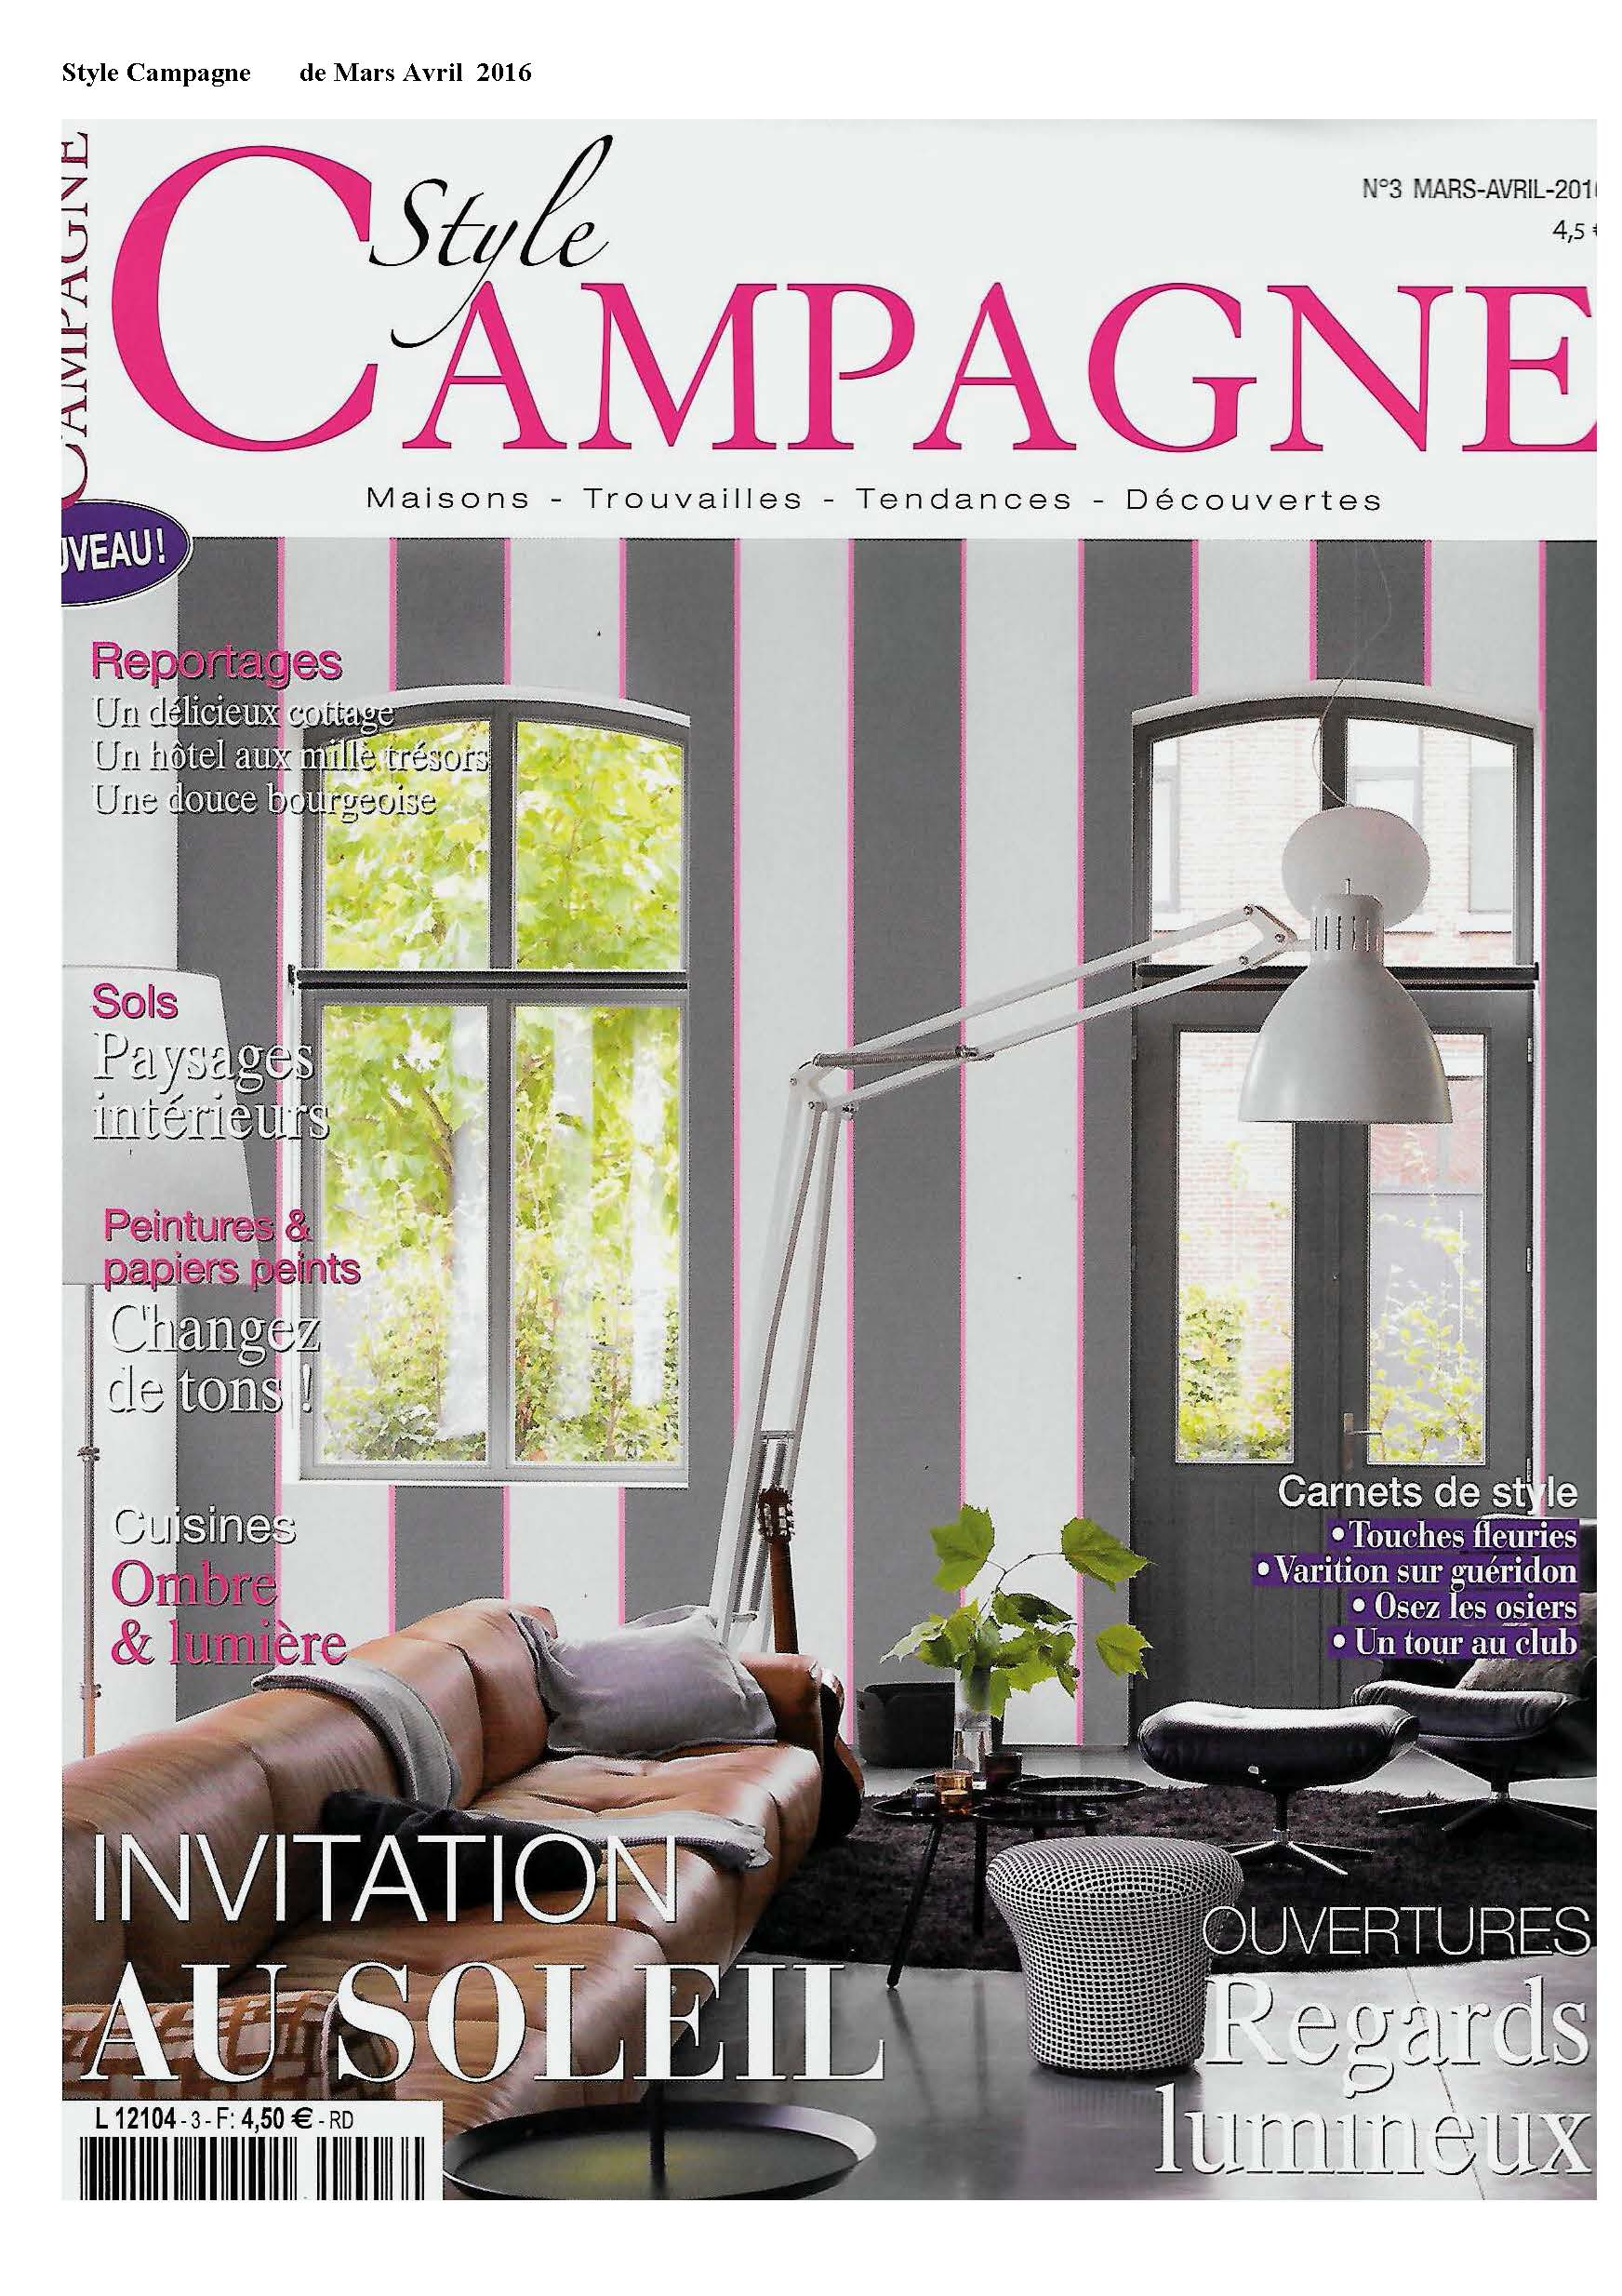 Style Campagne Maart April 2016